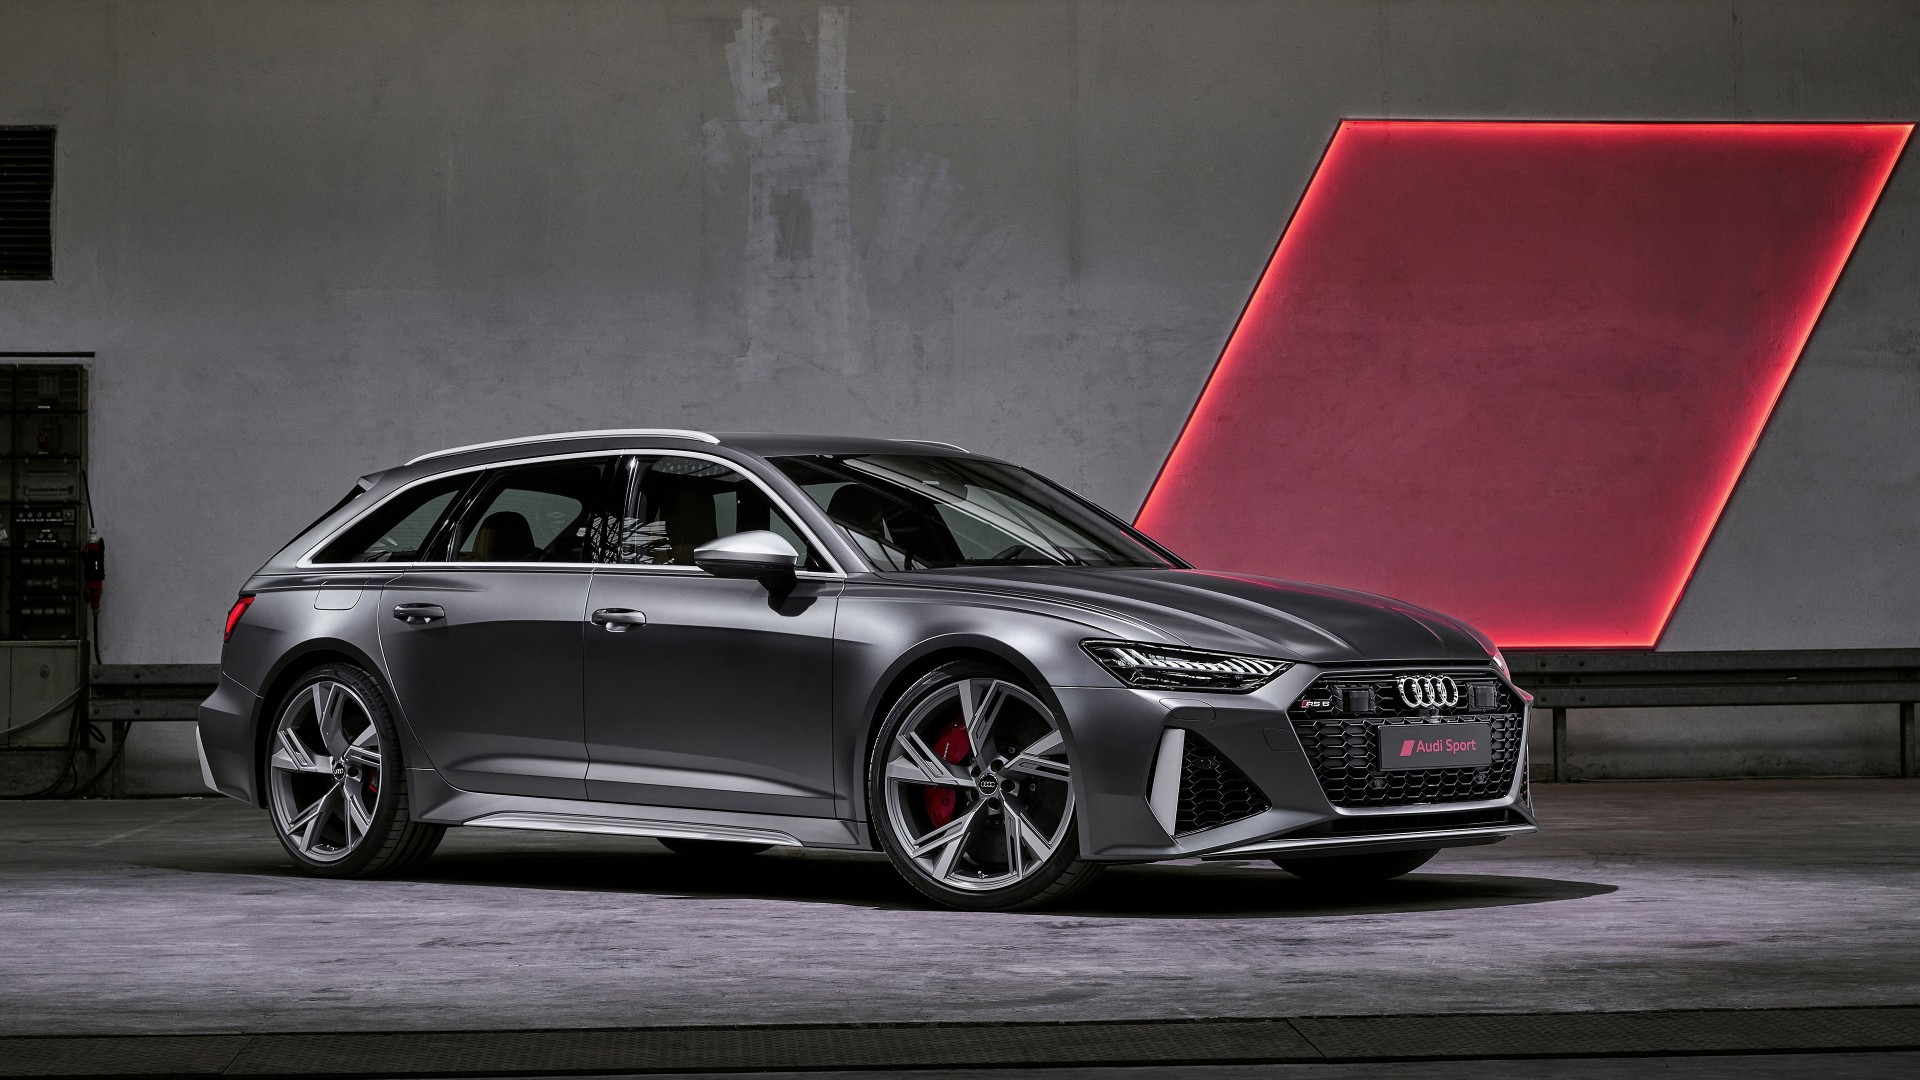 2020 Audi RS6 Avant 4K Wallpaper | HD Car Wallpapers | ID ...